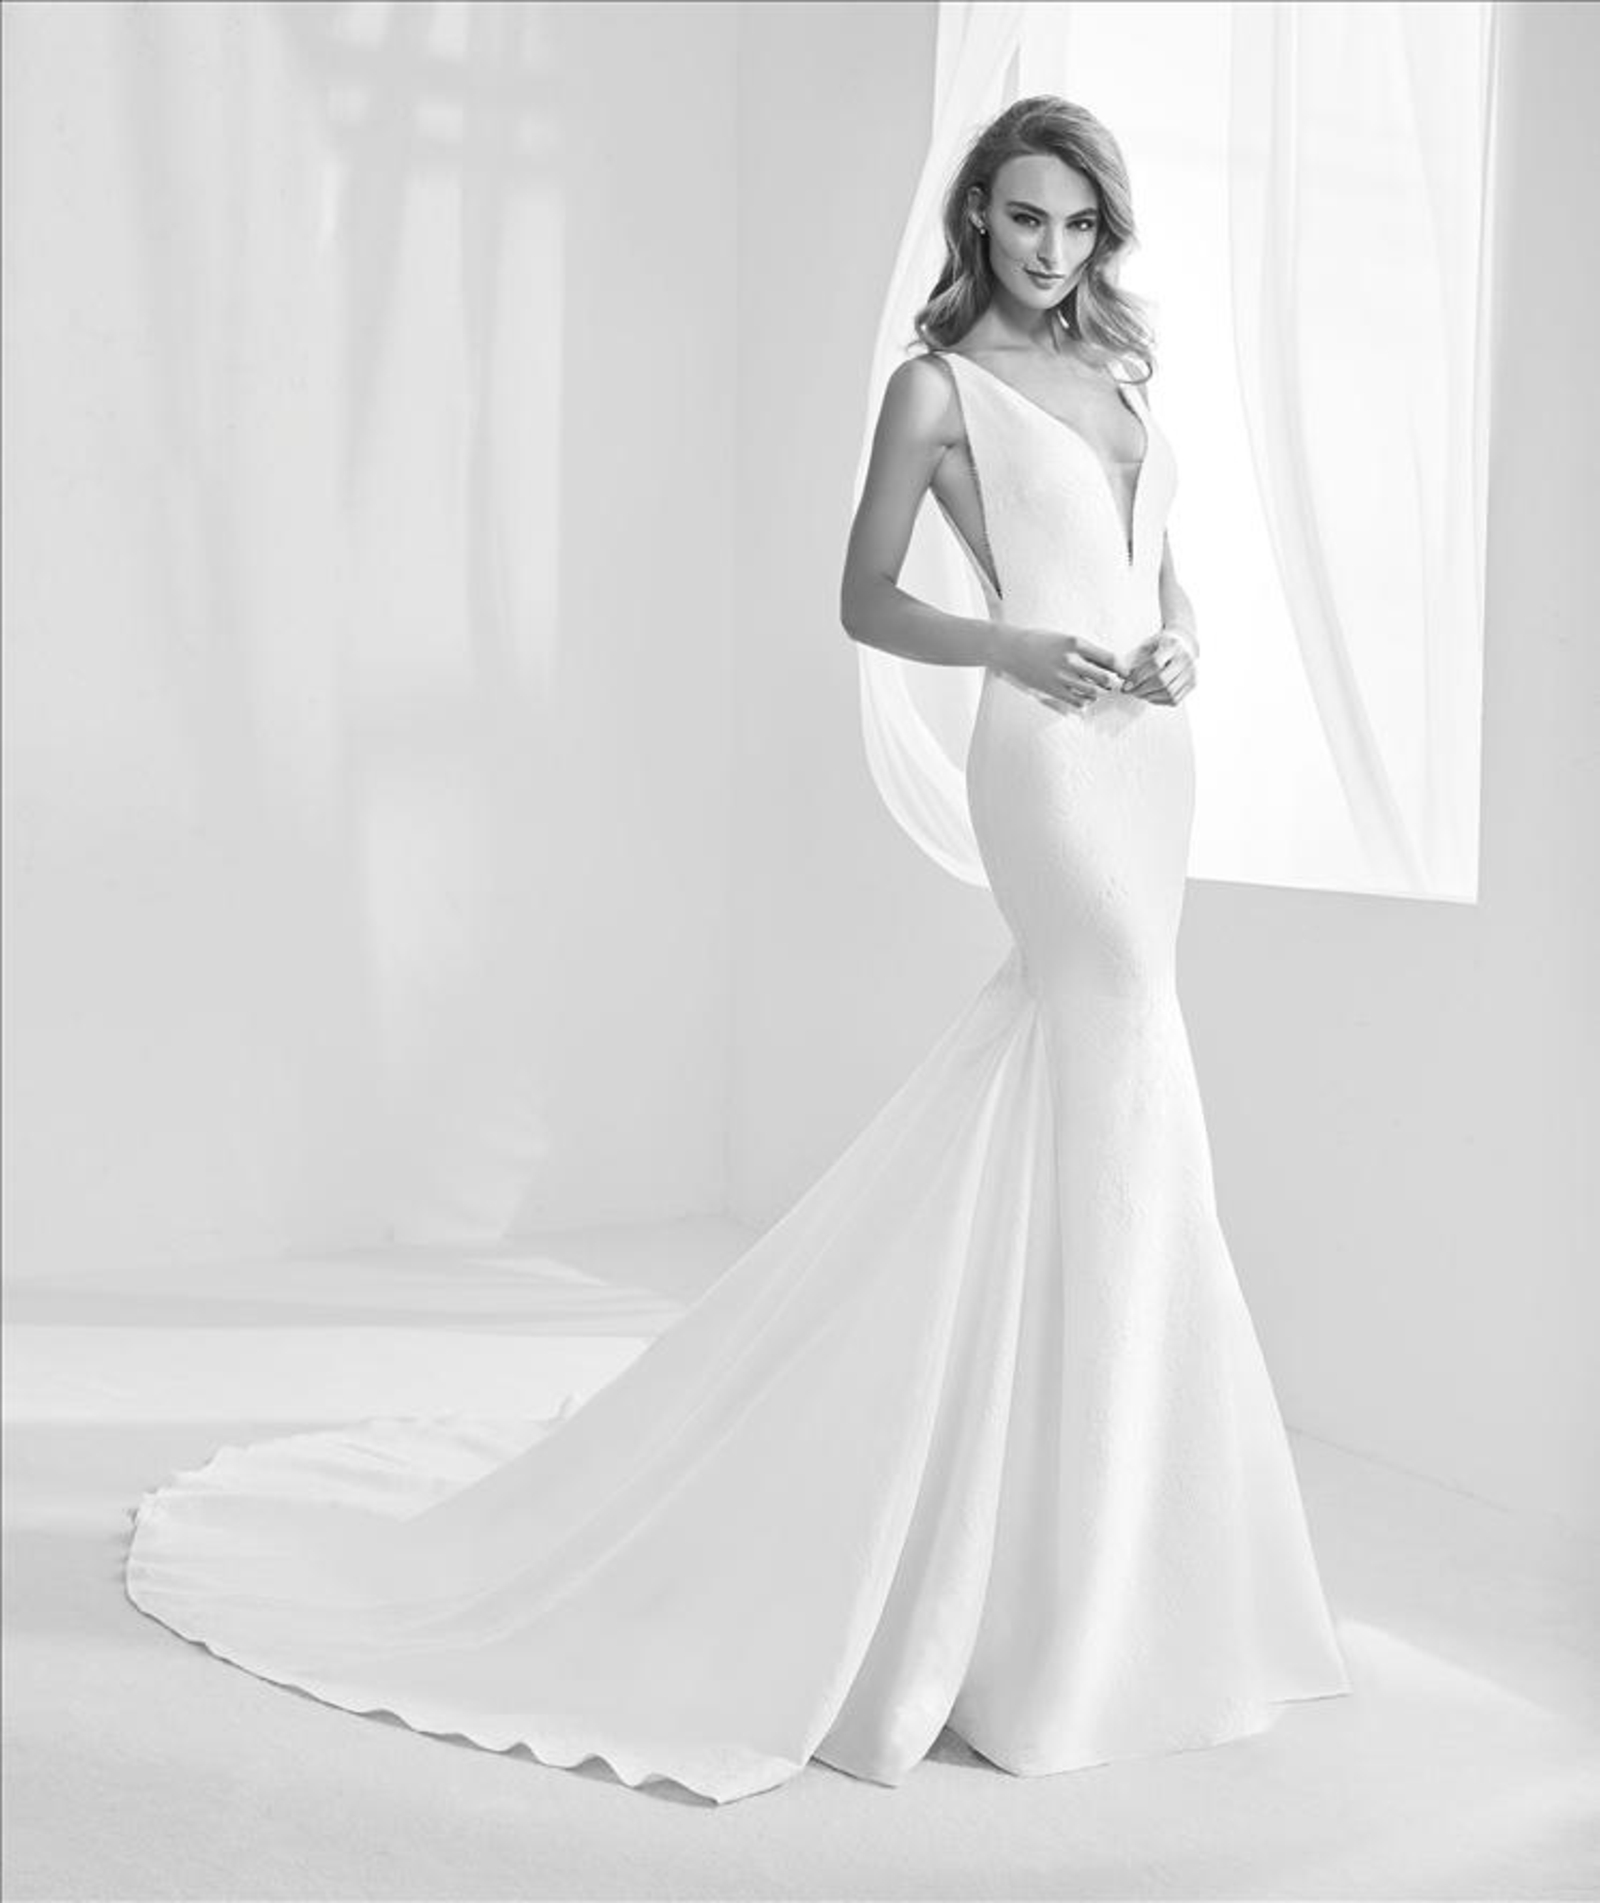 Brautkleider, Pronovias, Preview Collection, 2018 - Wir sagen Ja!